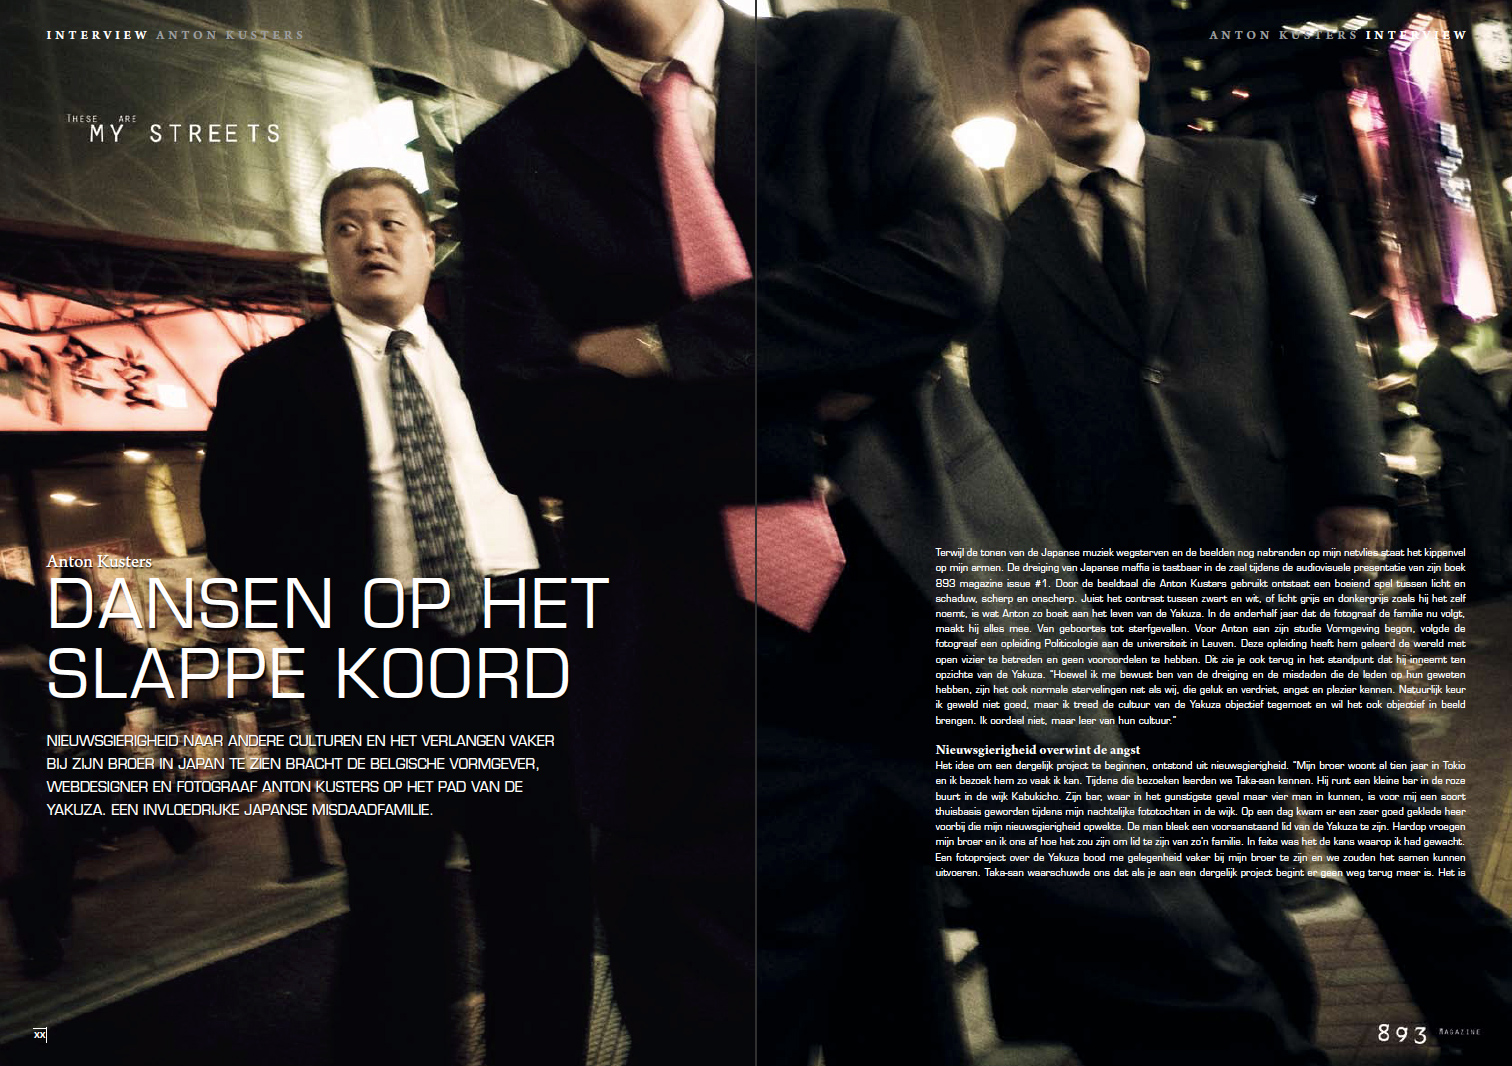 interview_fotografie_01-11_p1-2.jpg